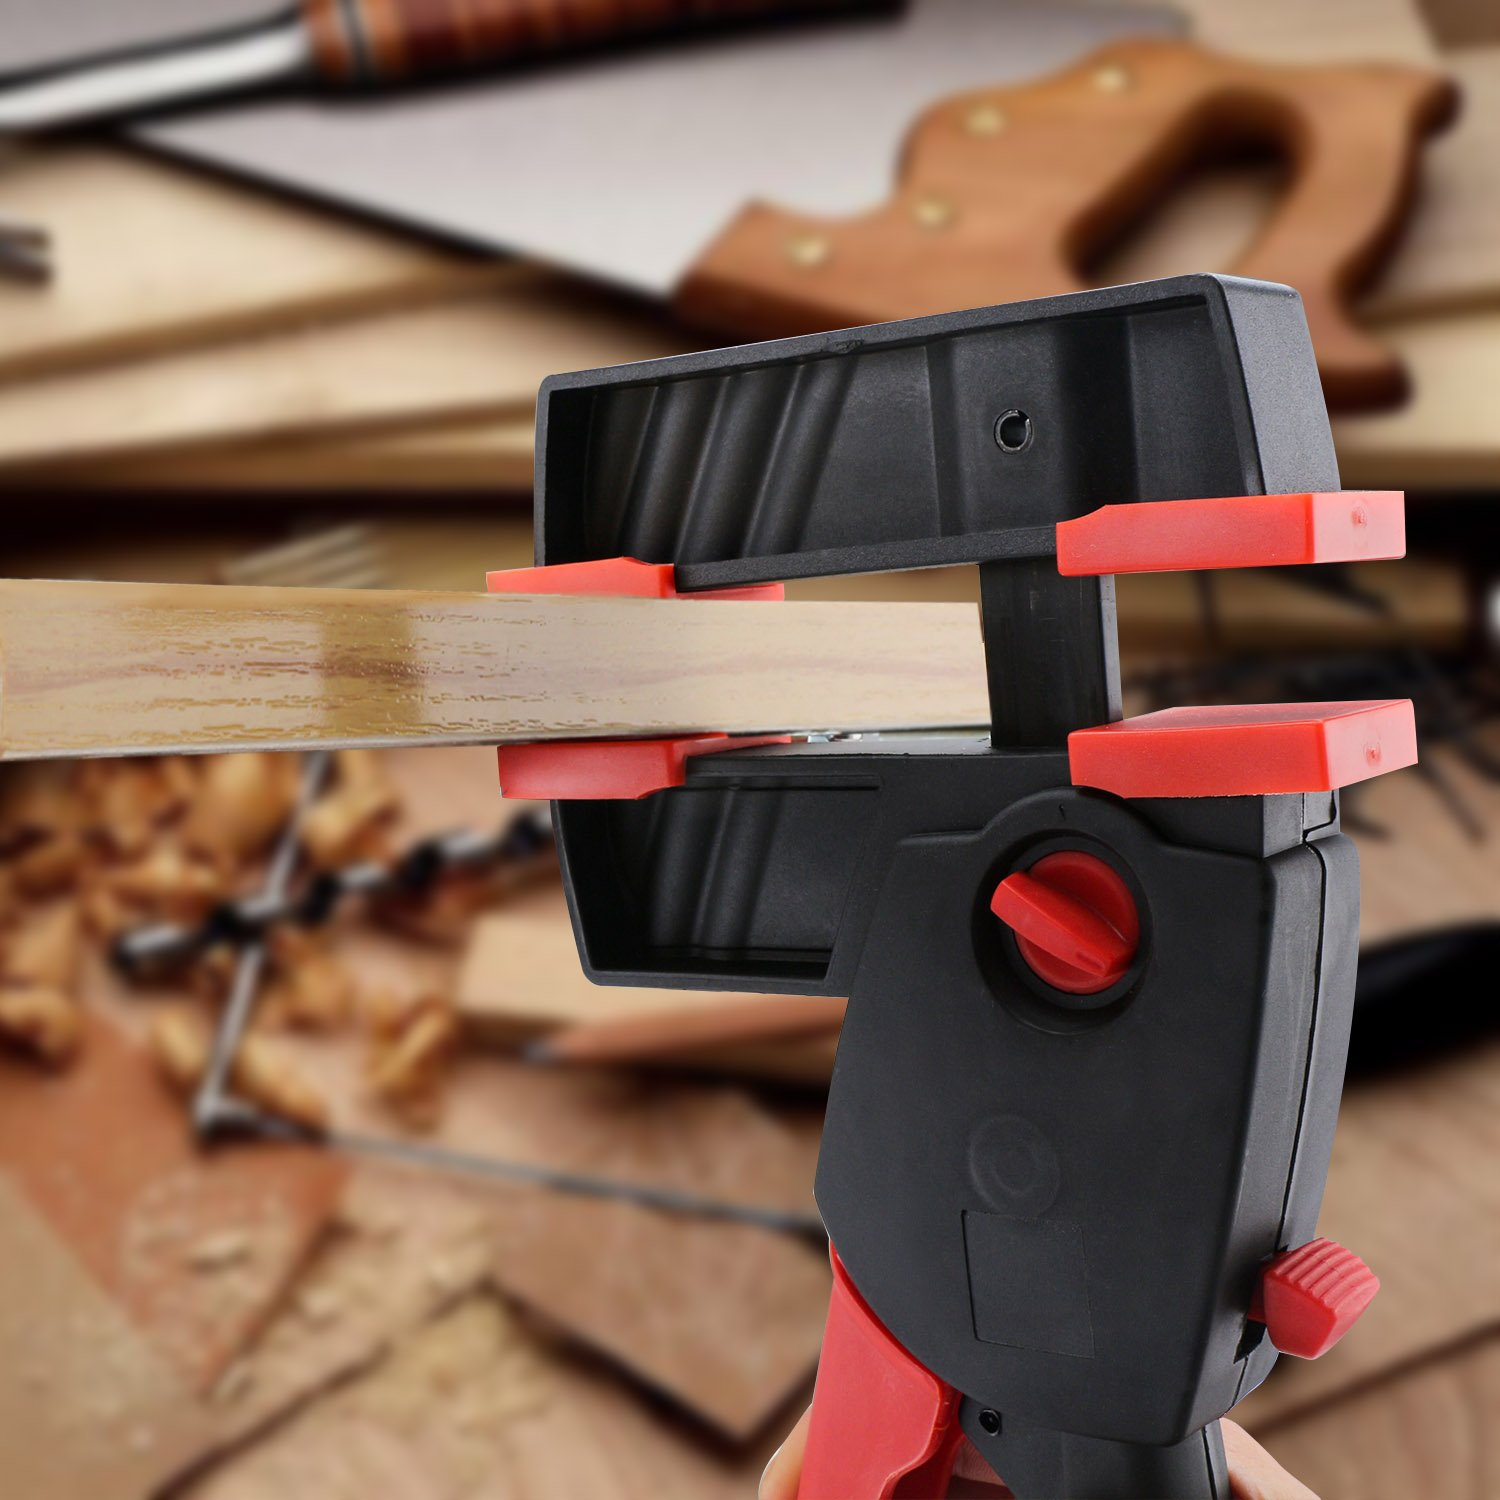 Bar Clamps: EnPoint™ Quick Grip Clamps Wood Clamps One-handed F-Clamps Bar Clamp Spreader 12.6IN 32CM Heavy Duty Clamps Perfect for Woodworking Chair Table Cabinet Gluing Assembly Work by EnPoint (Image #6)